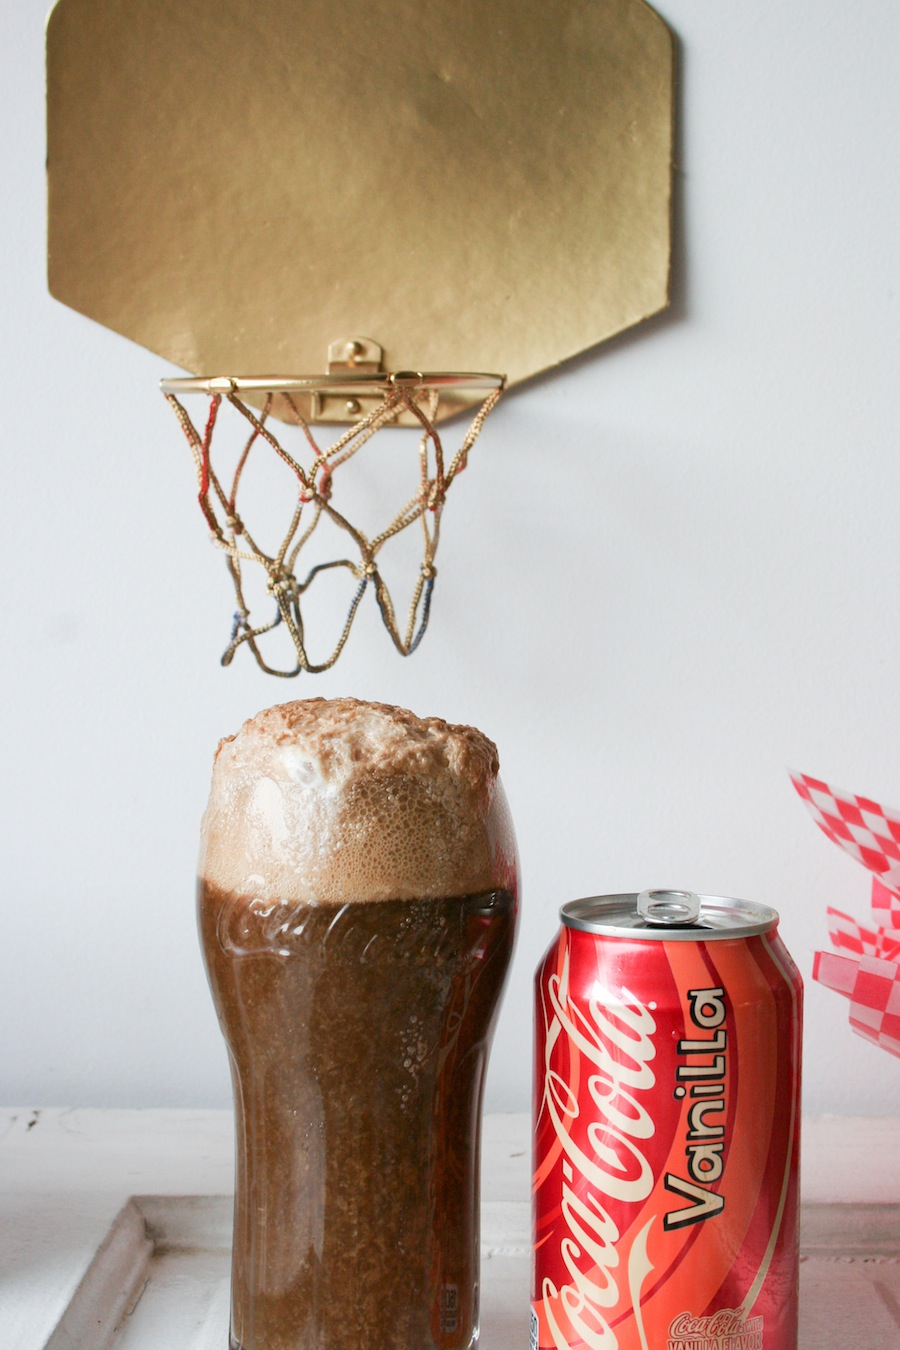 NCAA® March Madness Final Four Party Coca-Cola - Legal Miss Sunshine